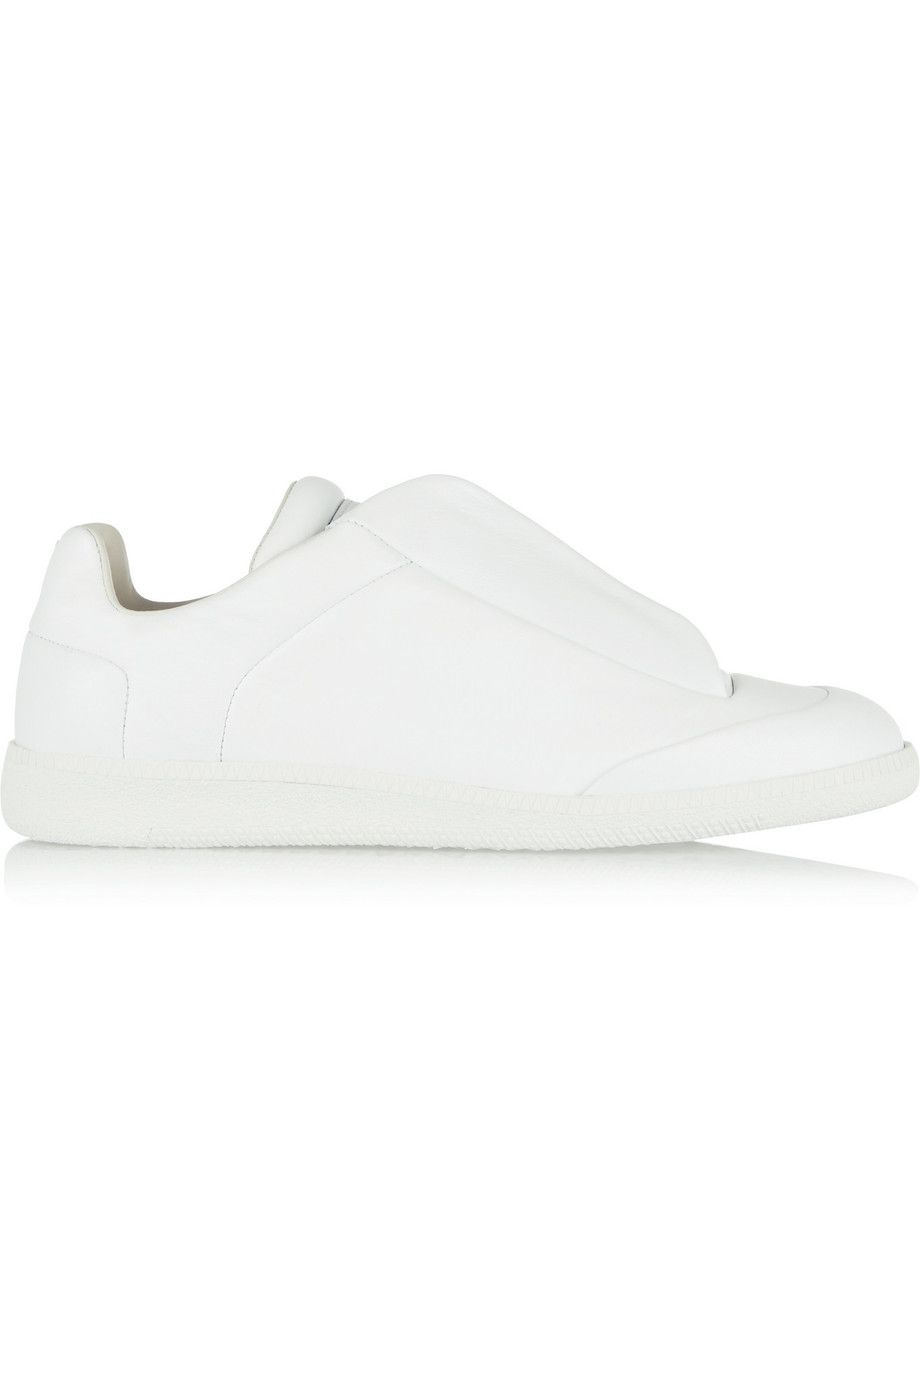 MAISON MARGIELA Leather Sneakers. #maisonmargiela #shoes #sneakers